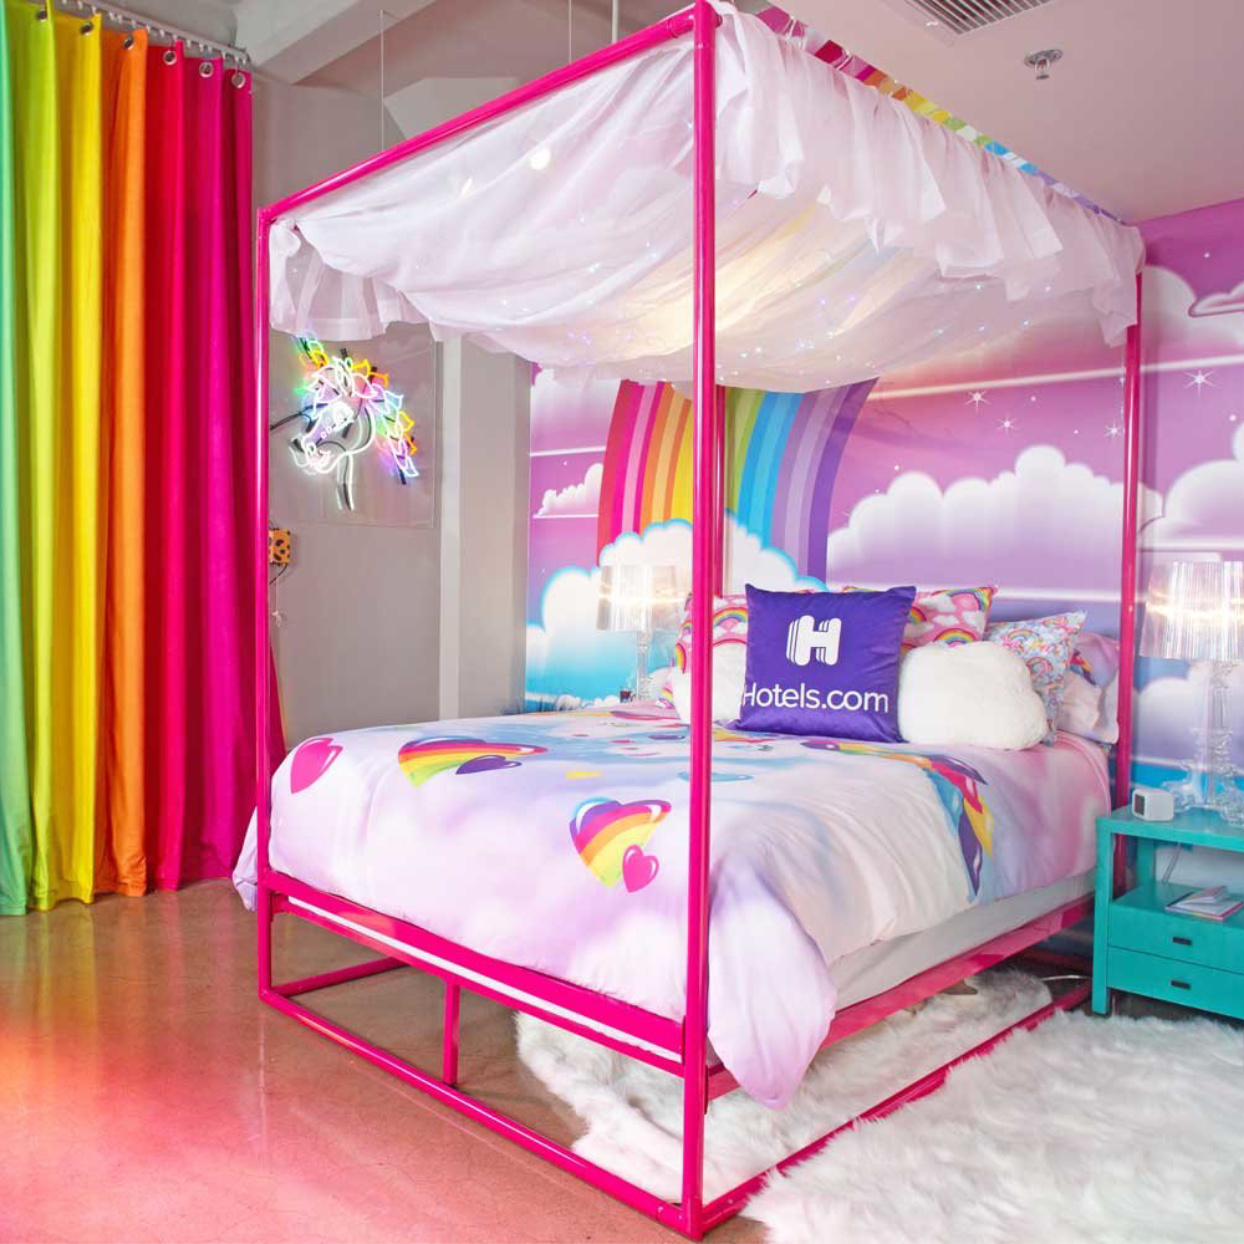 This Lisa Frank Pop-Up Hotel Room Was Made for '90s Kids